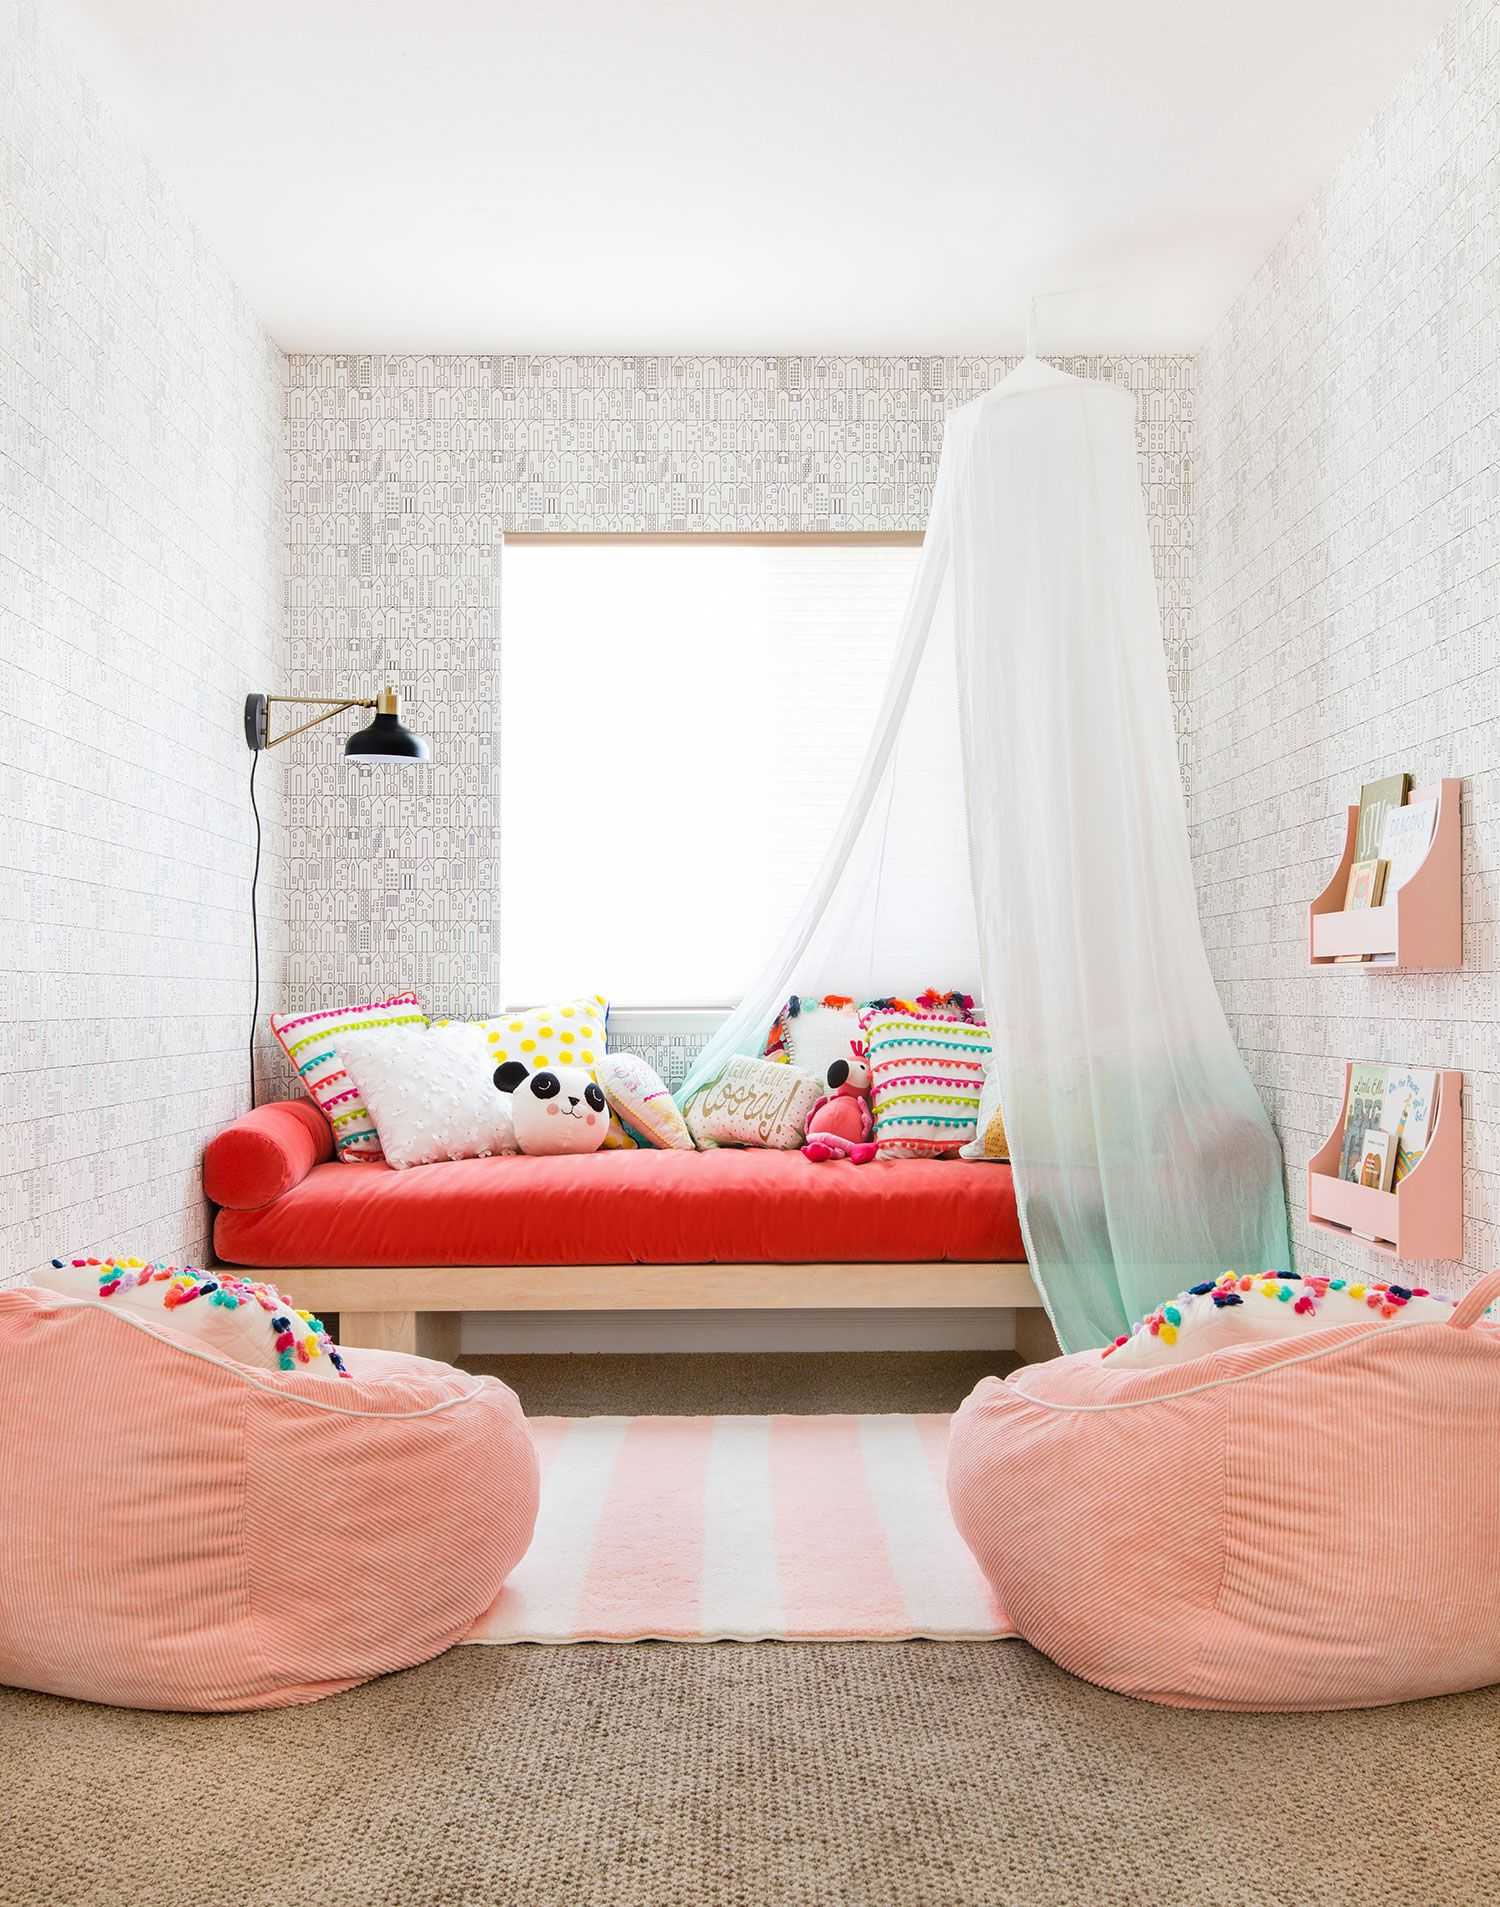 Emily Henderson Transforms A Playroom With The Pillowfort Kids Decor Collection From Target Kid Room Decor Pillow Fort Colorful Playroom